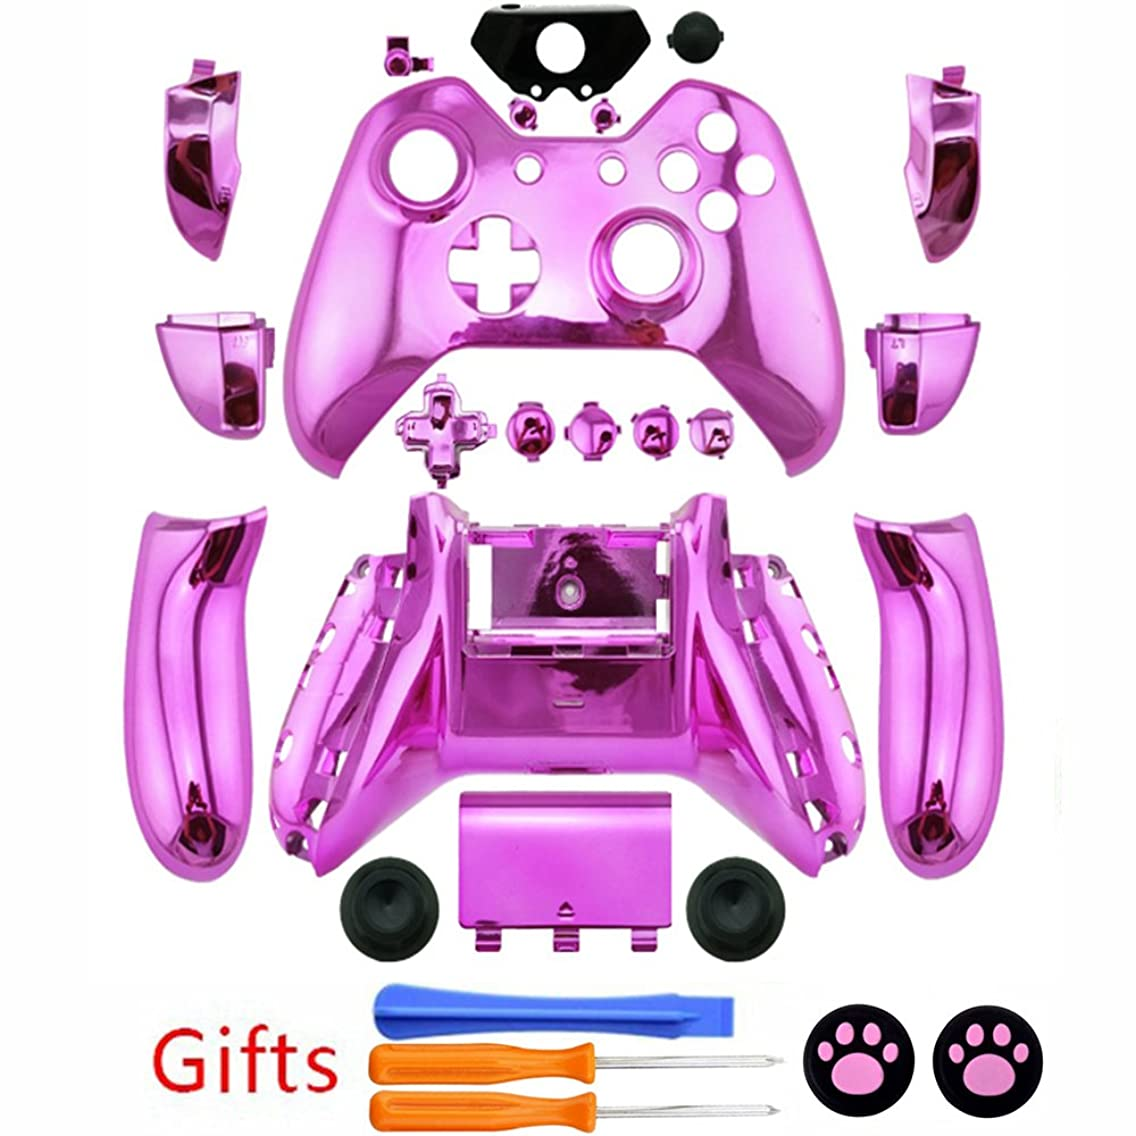 New Custom Full Housing Shell Case Cover with Buttons for Xbox One Wireless Controller - Chrome Pink